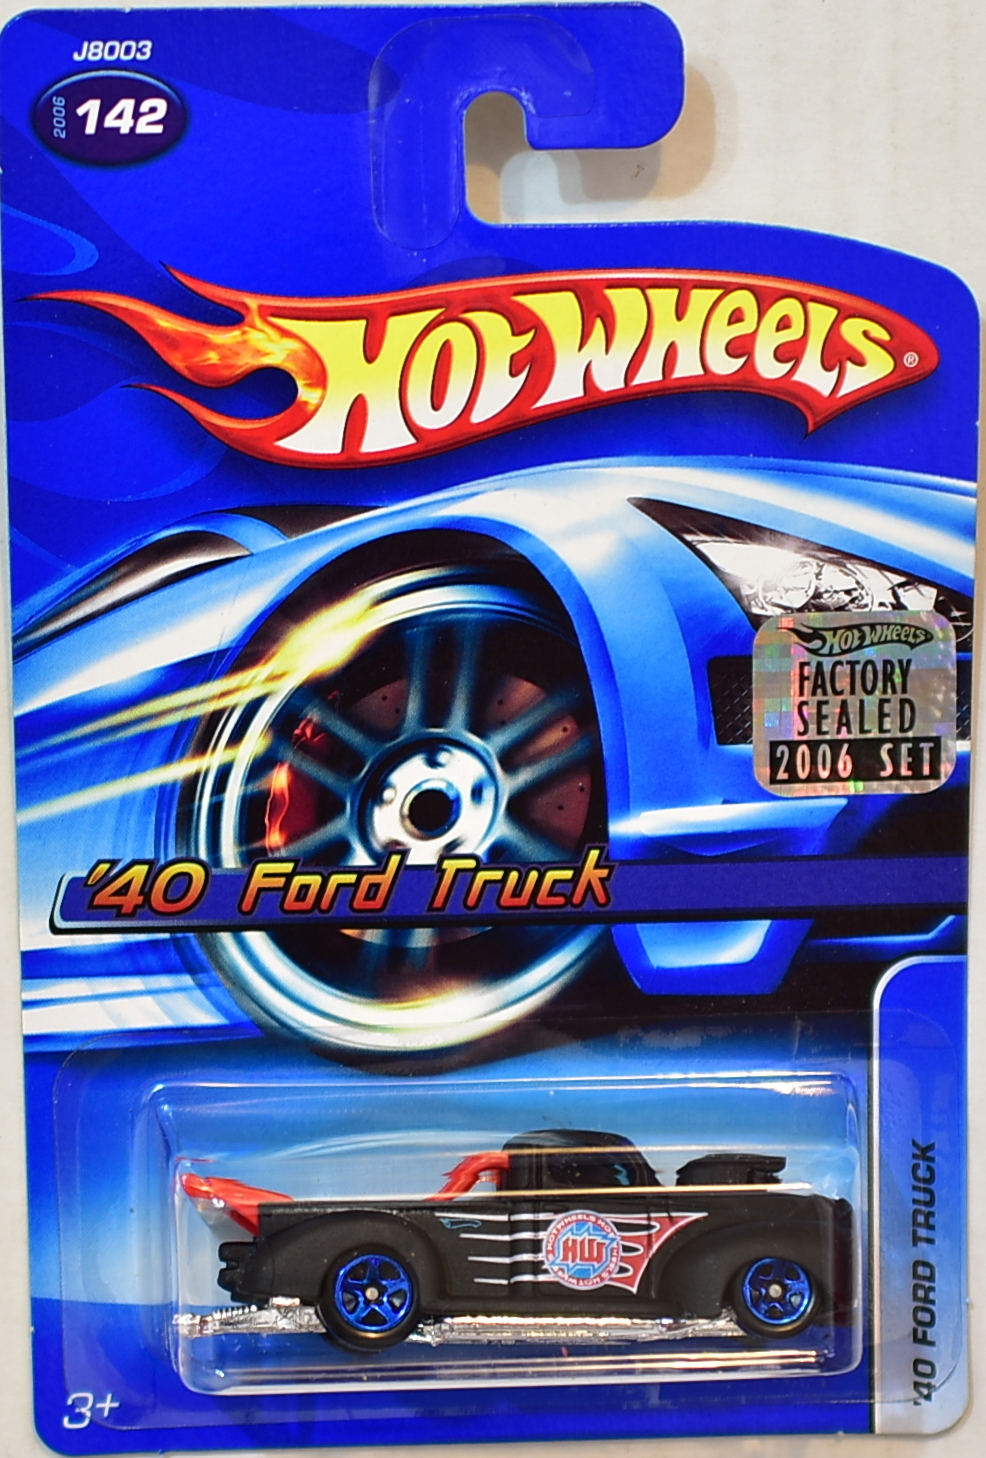 HOT WHEELS 2006 '40 FORD TRUCK #142 BLACK FACTORY SEALED